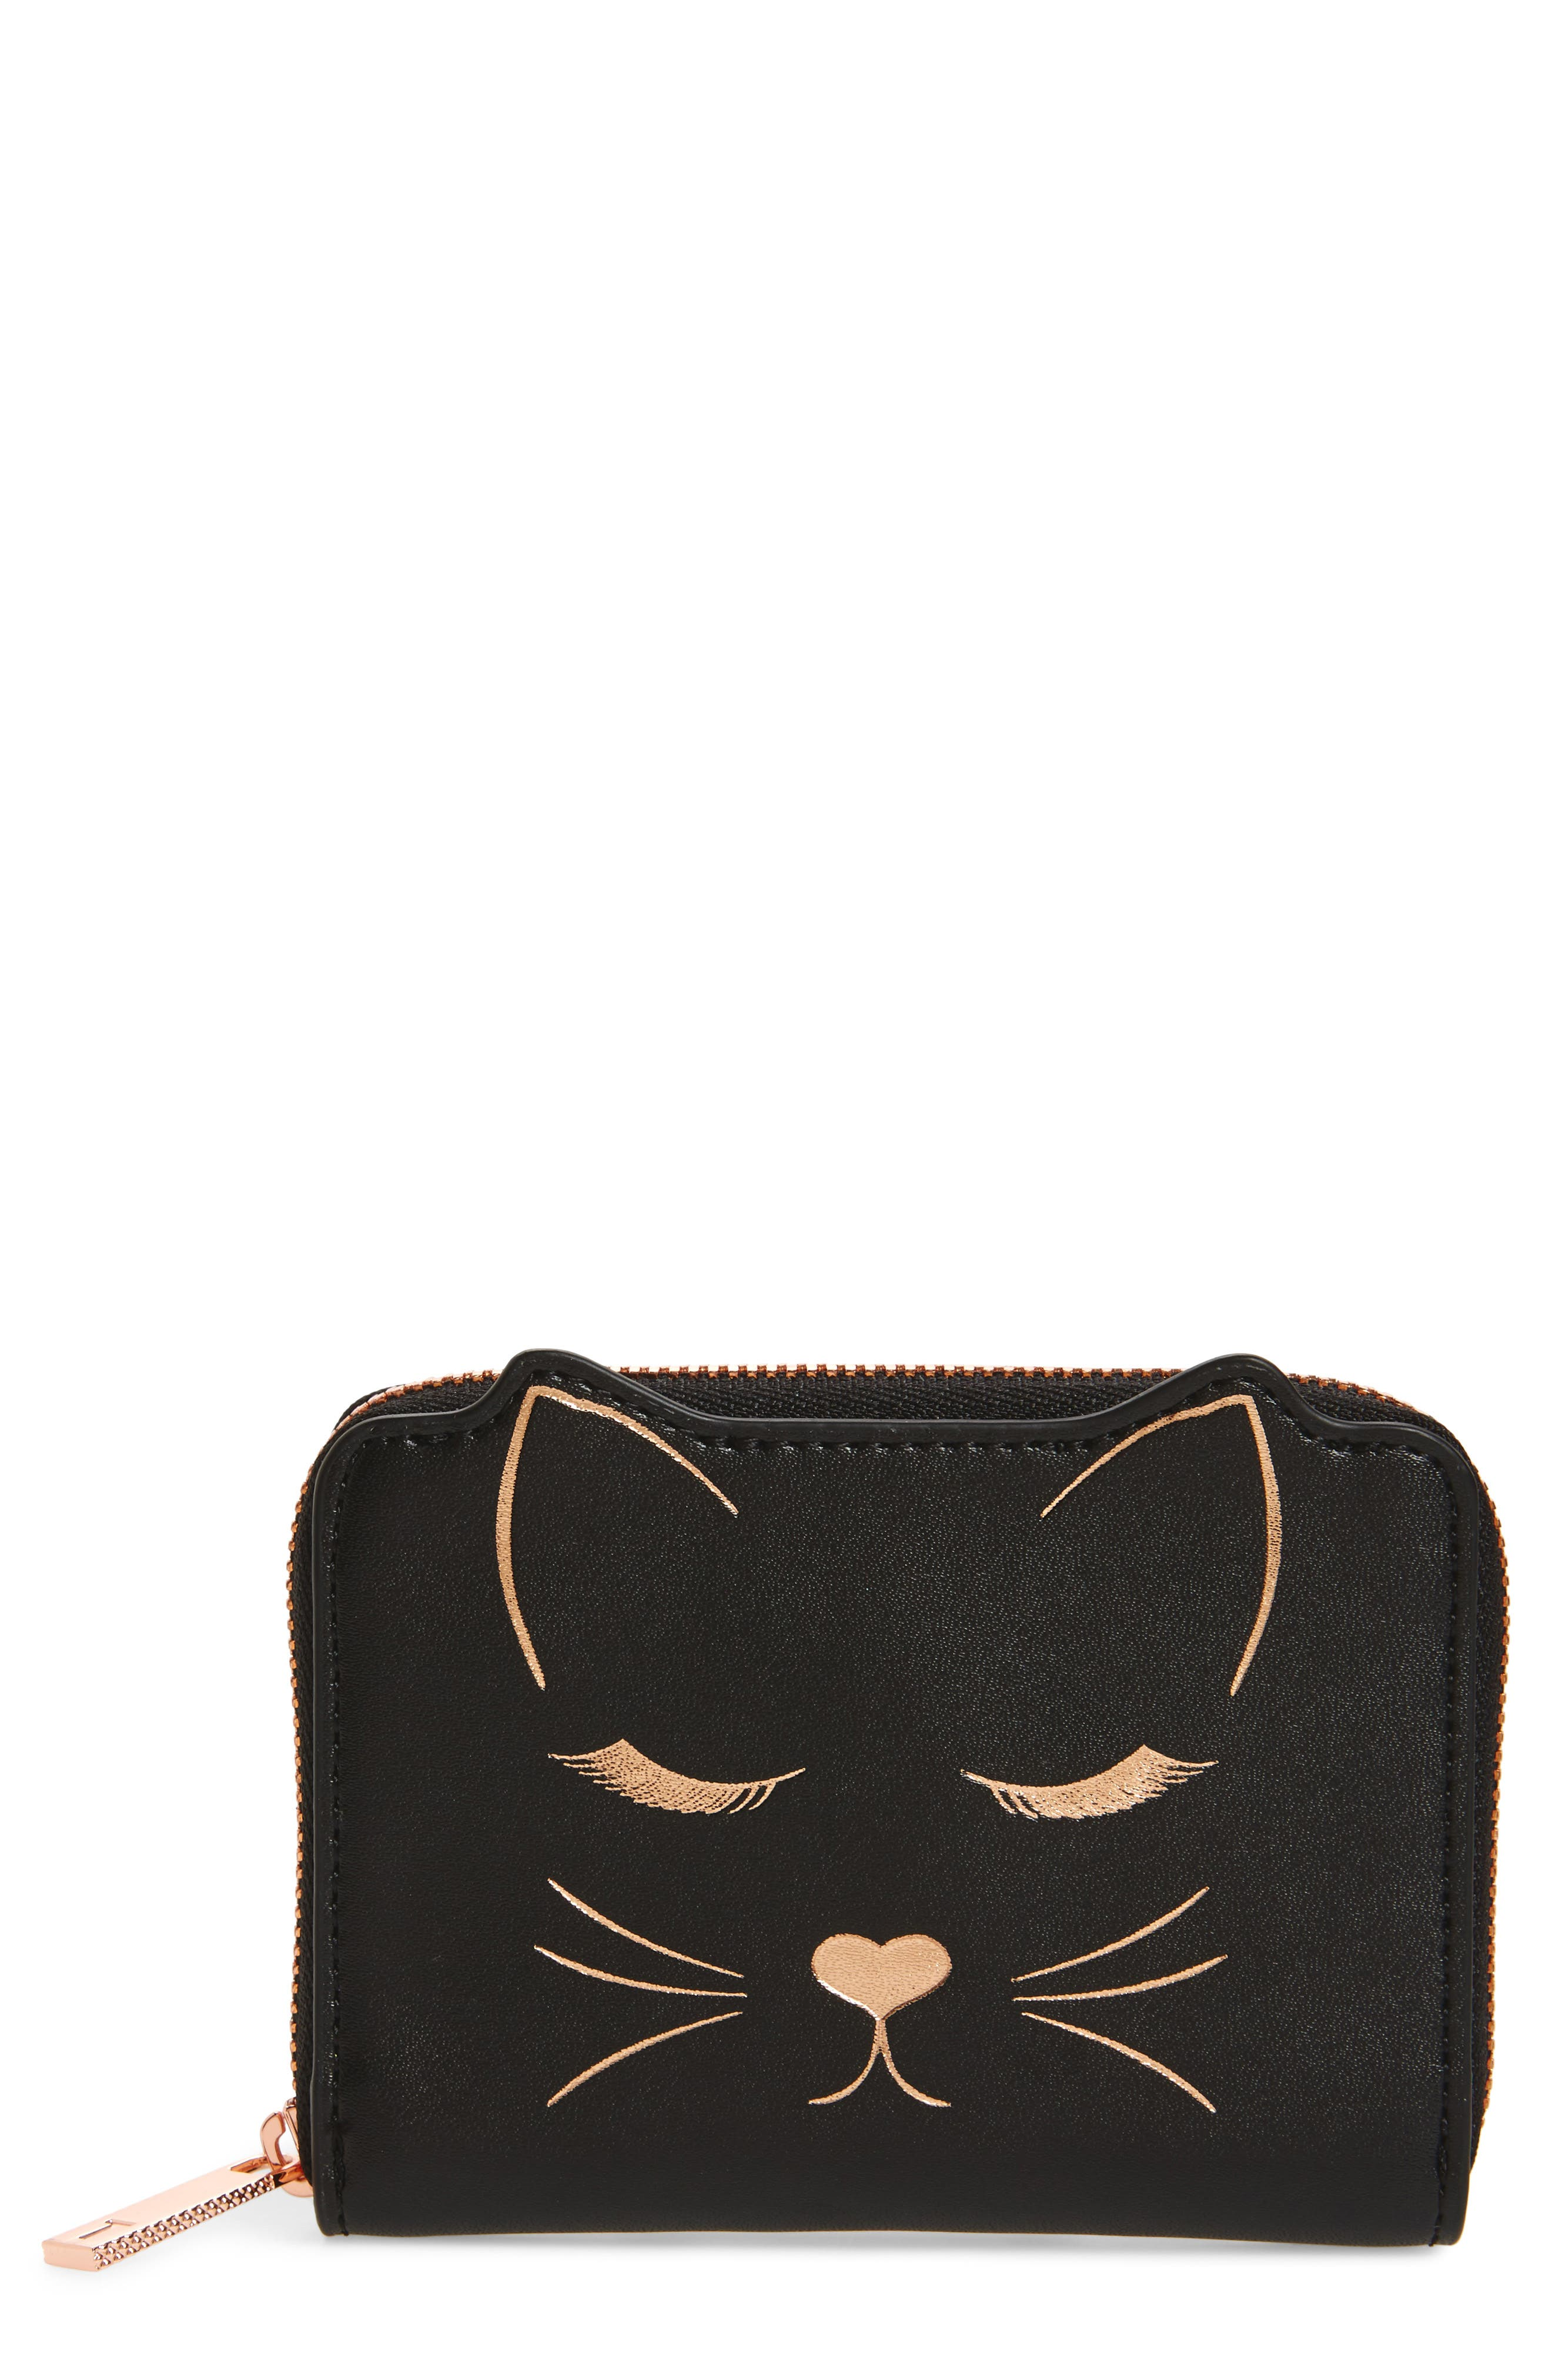 Zip Around Leather Wallet,                         Main,                         color, 001